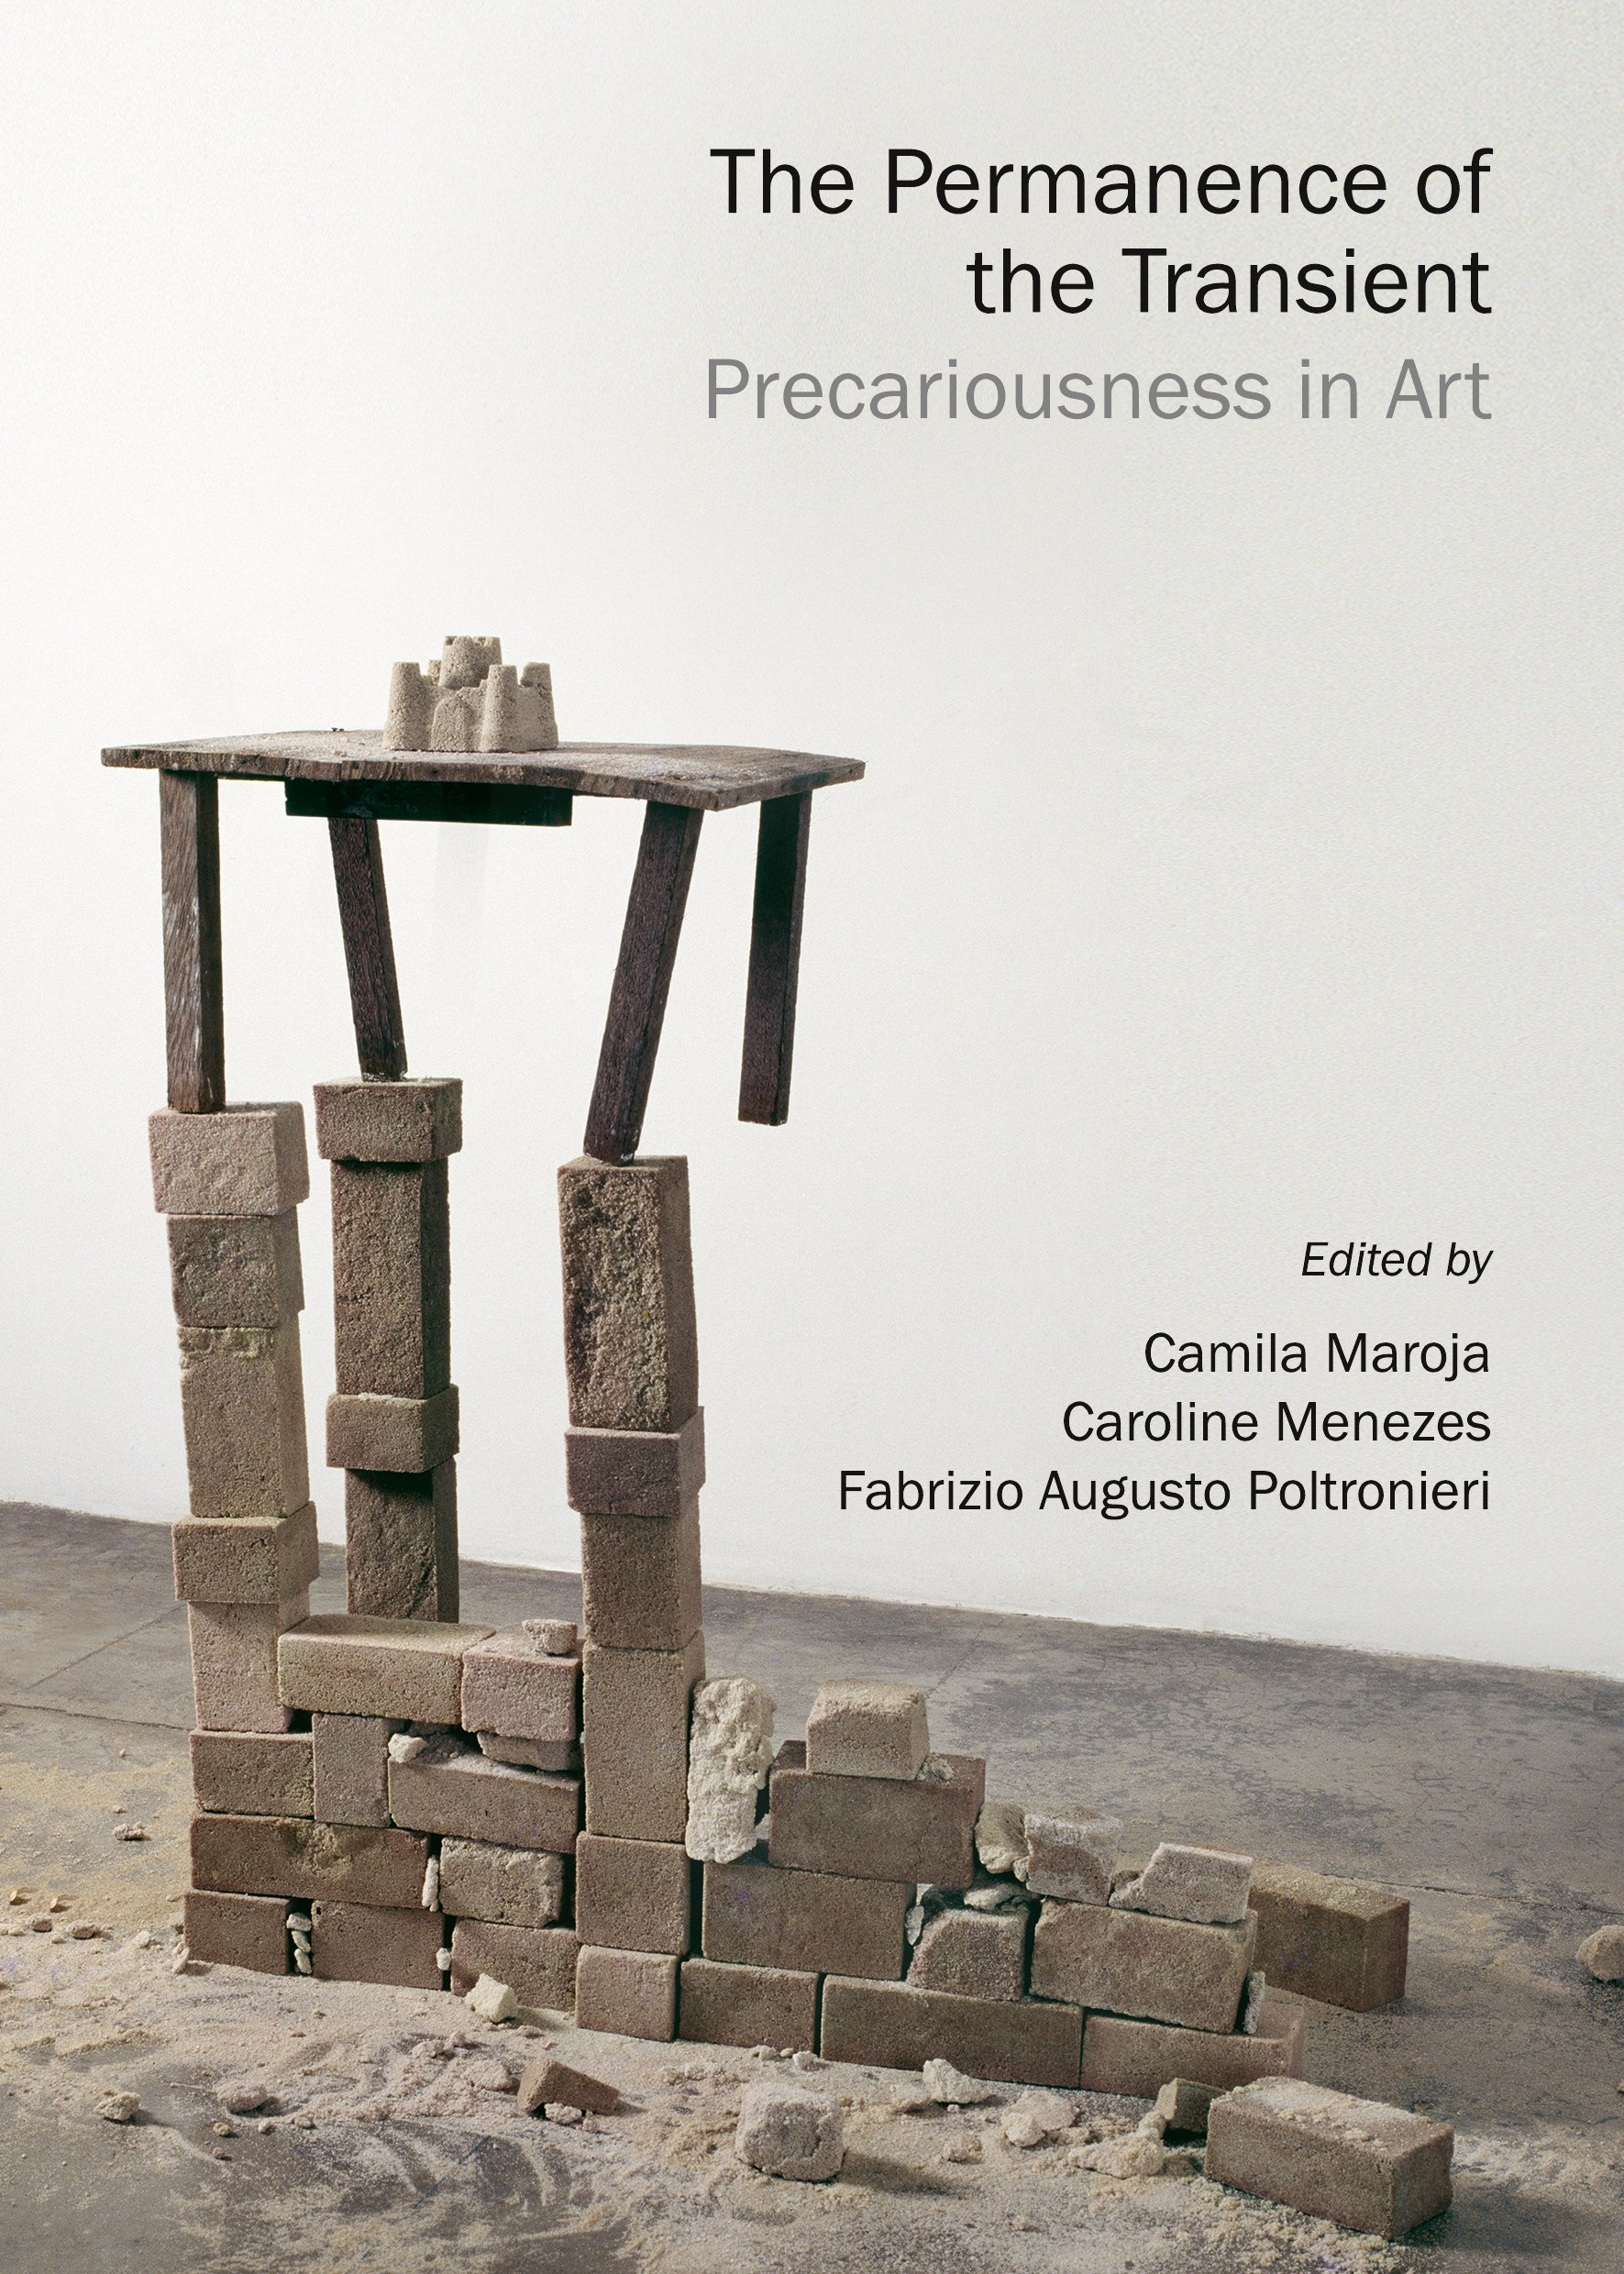 The Permanence of the Transient: Precariousness in Art